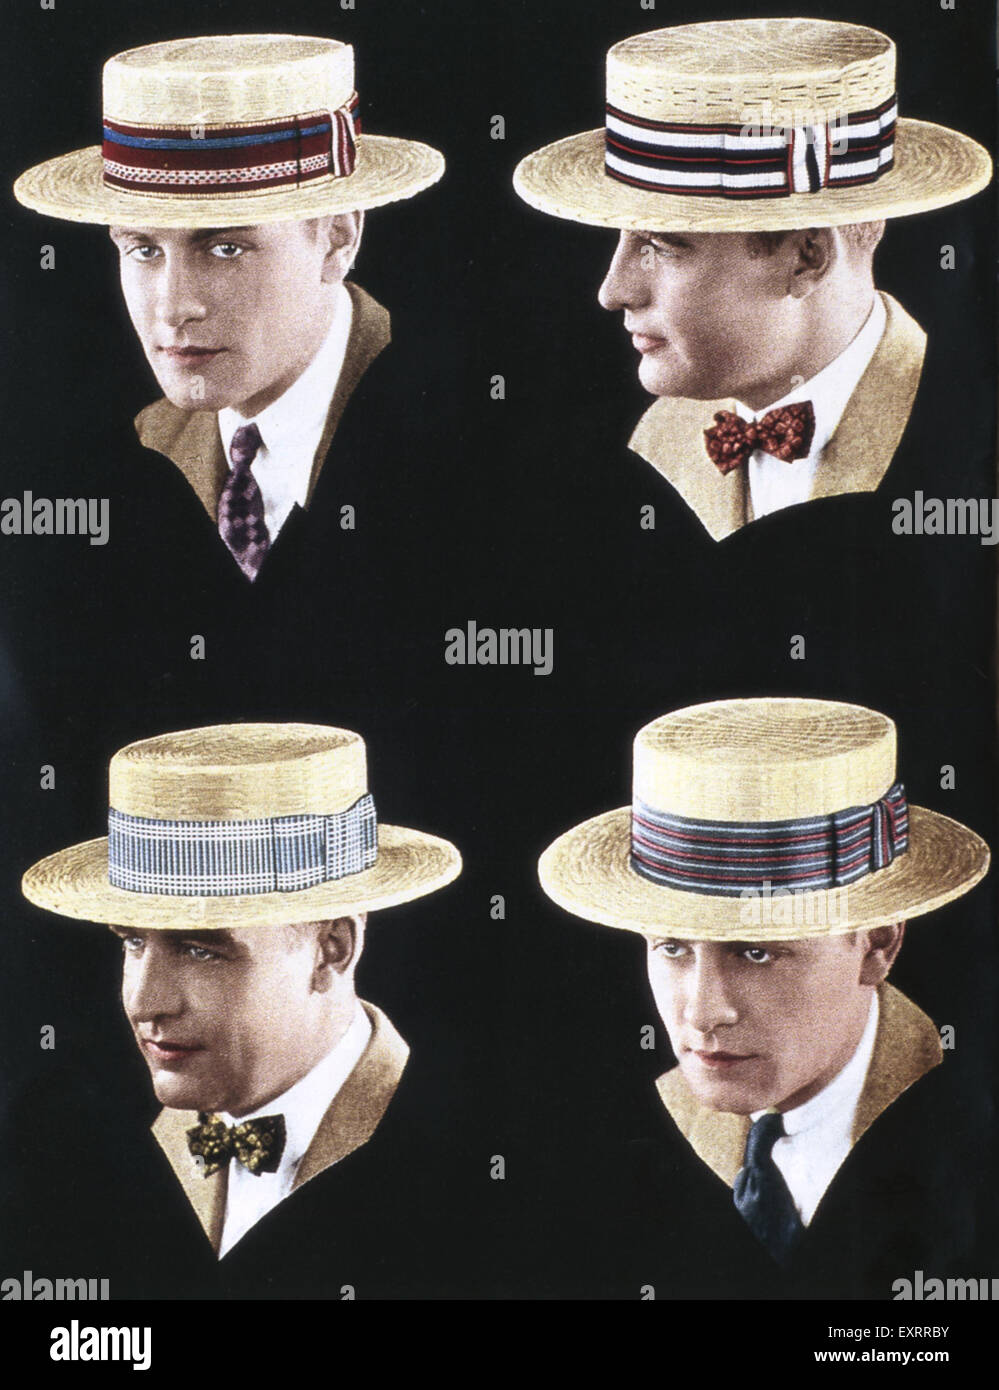 Mens 1920s fashion hats advise to wear for everyday in 2019